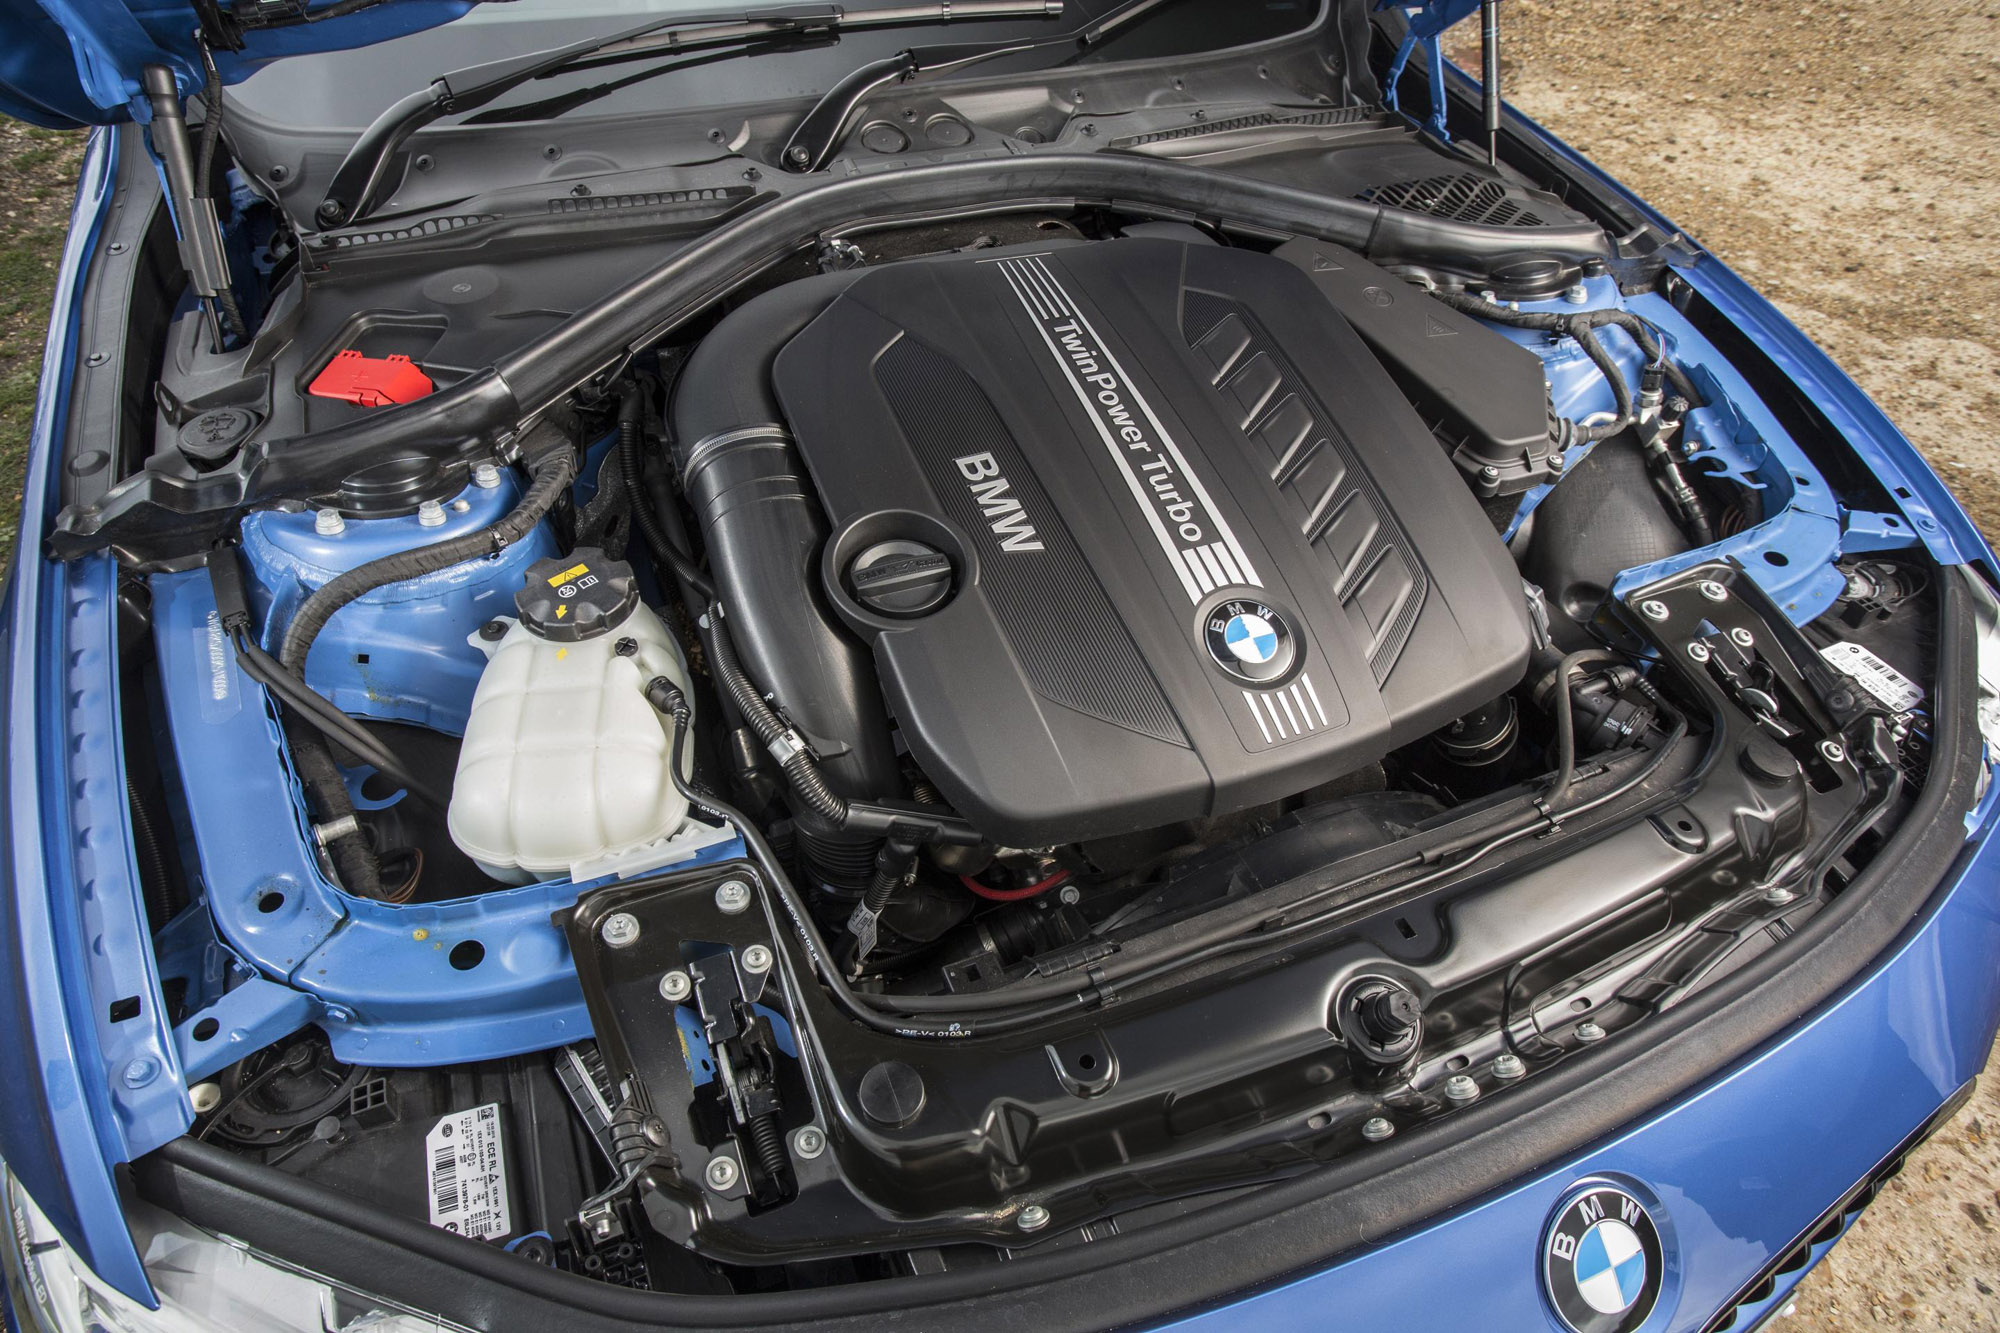 BMW 3-series - prices, specs and 0-60 time   Evo